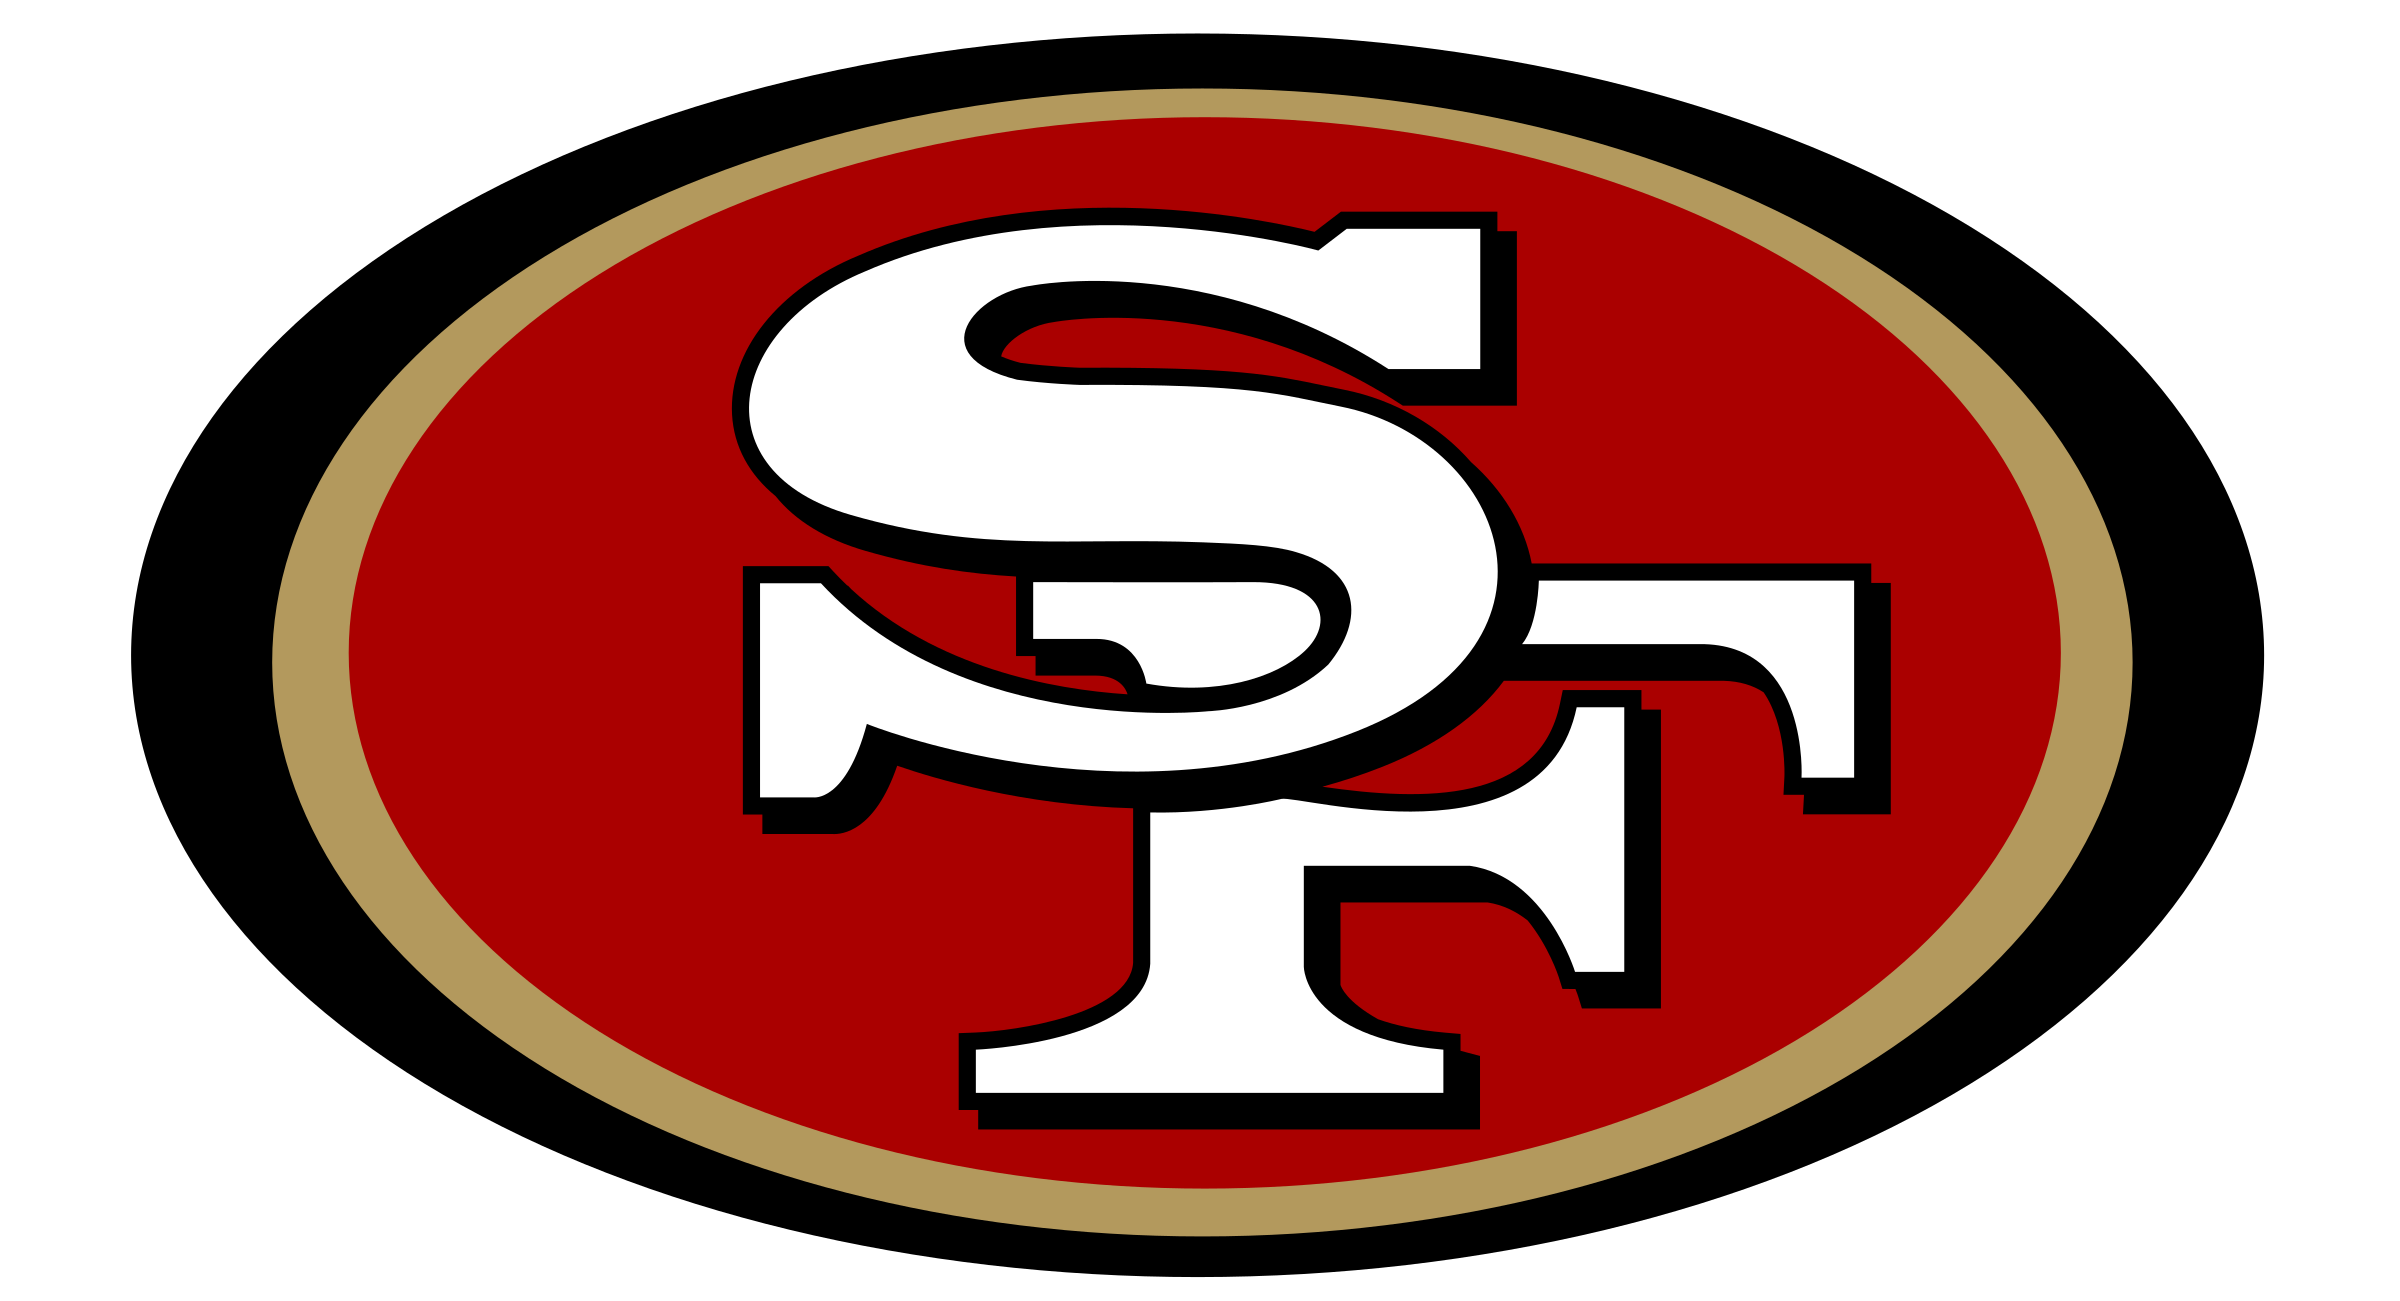 San francisco 49ers logo png. Ers transparent svg vector